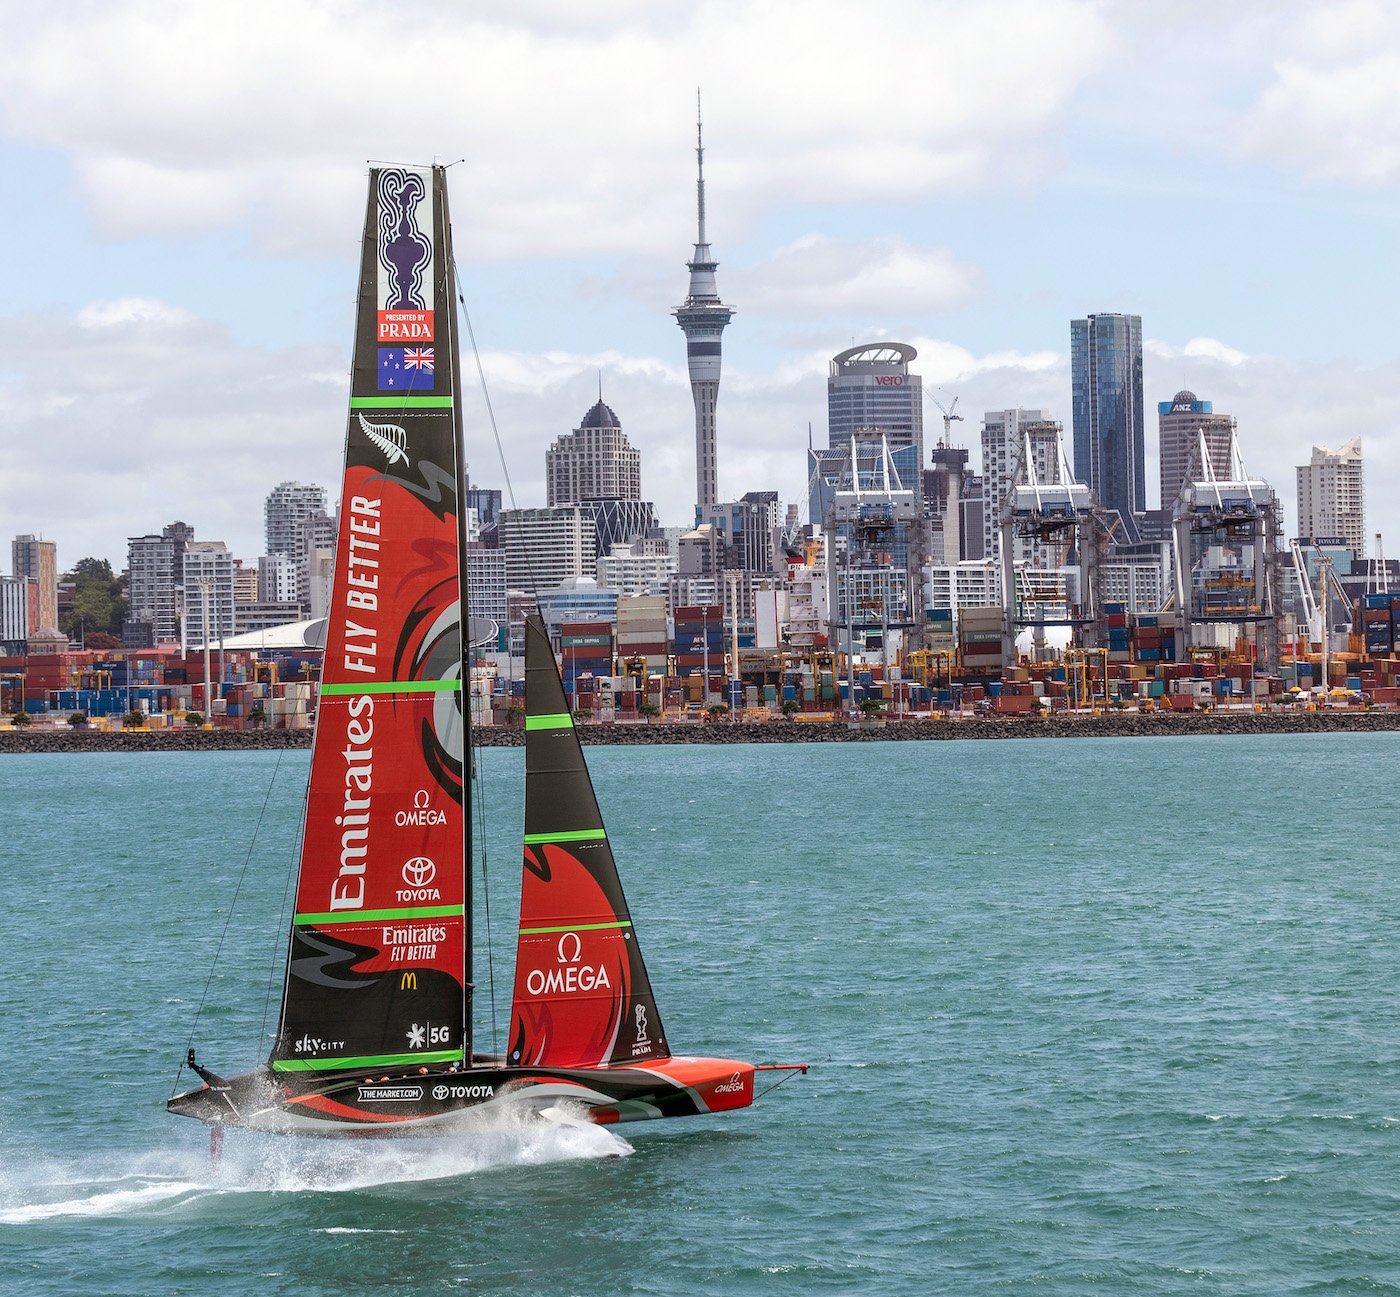 Omega in the starting blocks for the 36th America's Cup